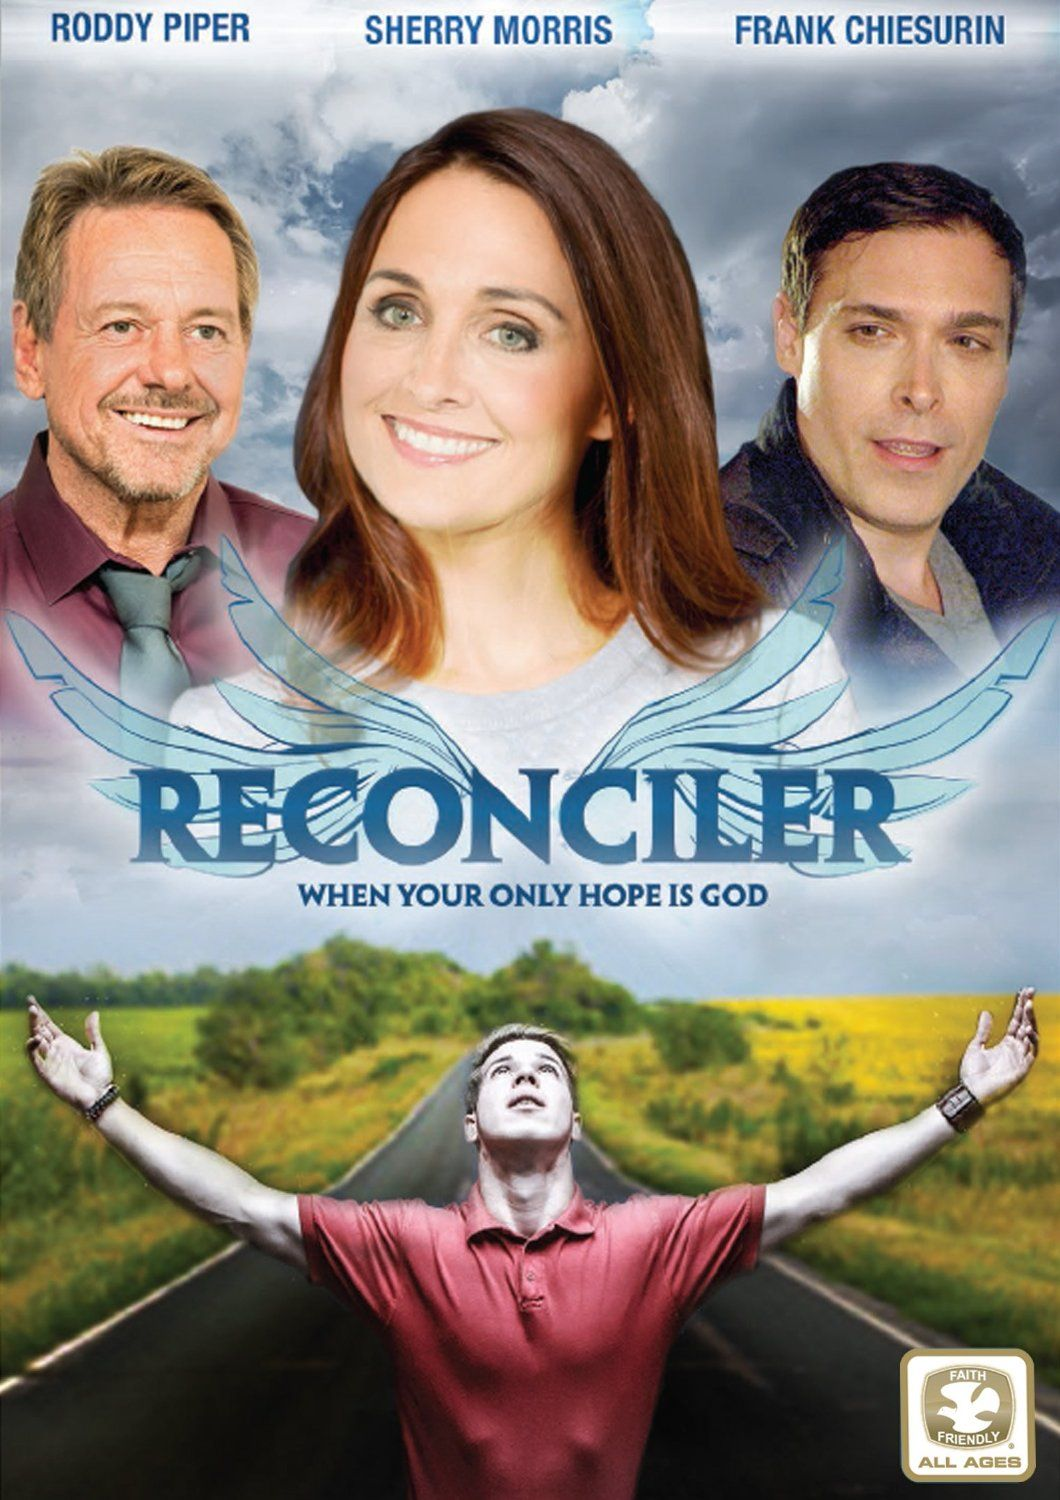 Reconciler Christian Movie/Film Shawn Justice CFDb